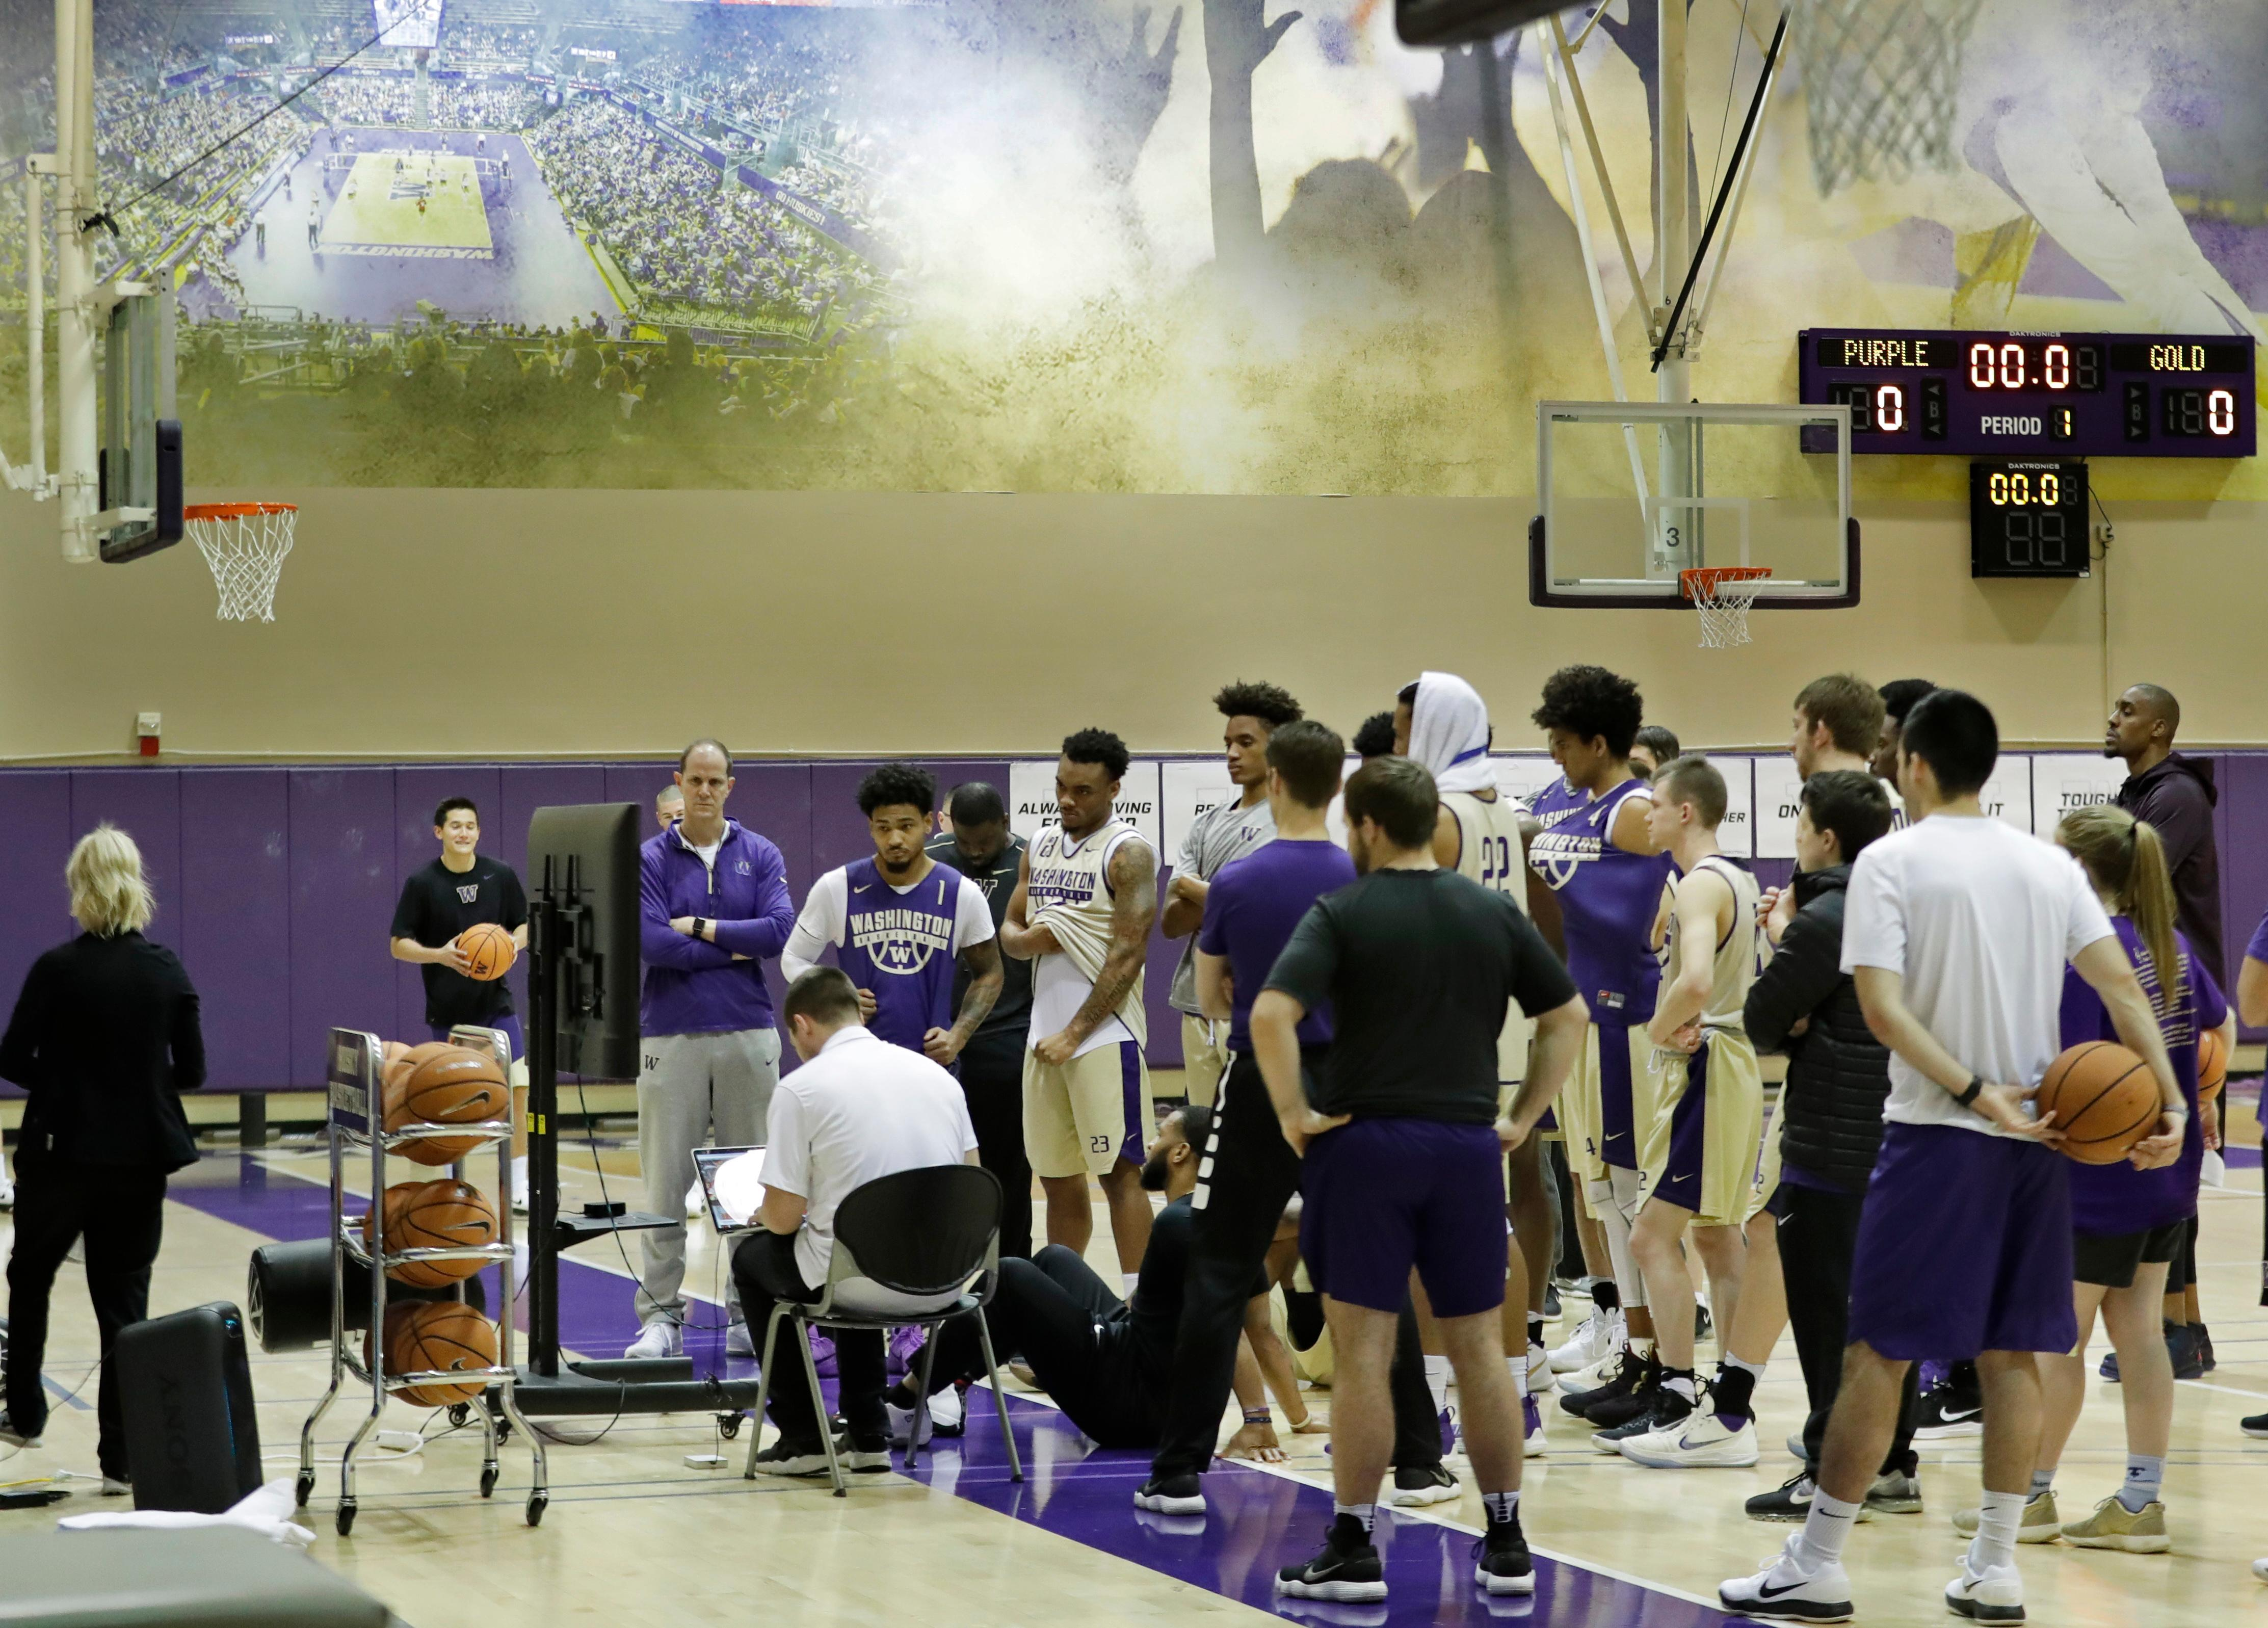 In this Friday, Jan. 26, 2018 photo, Washington head coach Mike Hopkins, third from left, stands near a video monitor during a quick film session at the start of NCAA college basketball practice, two days before Washington's 80-62 win over Washington State in Seattle. One of the most surprising stories in college basketball is what Hopkins is doing in his first season at Washington and how the Huskies are in the conversation for an NCAA bid entering February. (AP Photo/Ted S. Warren)